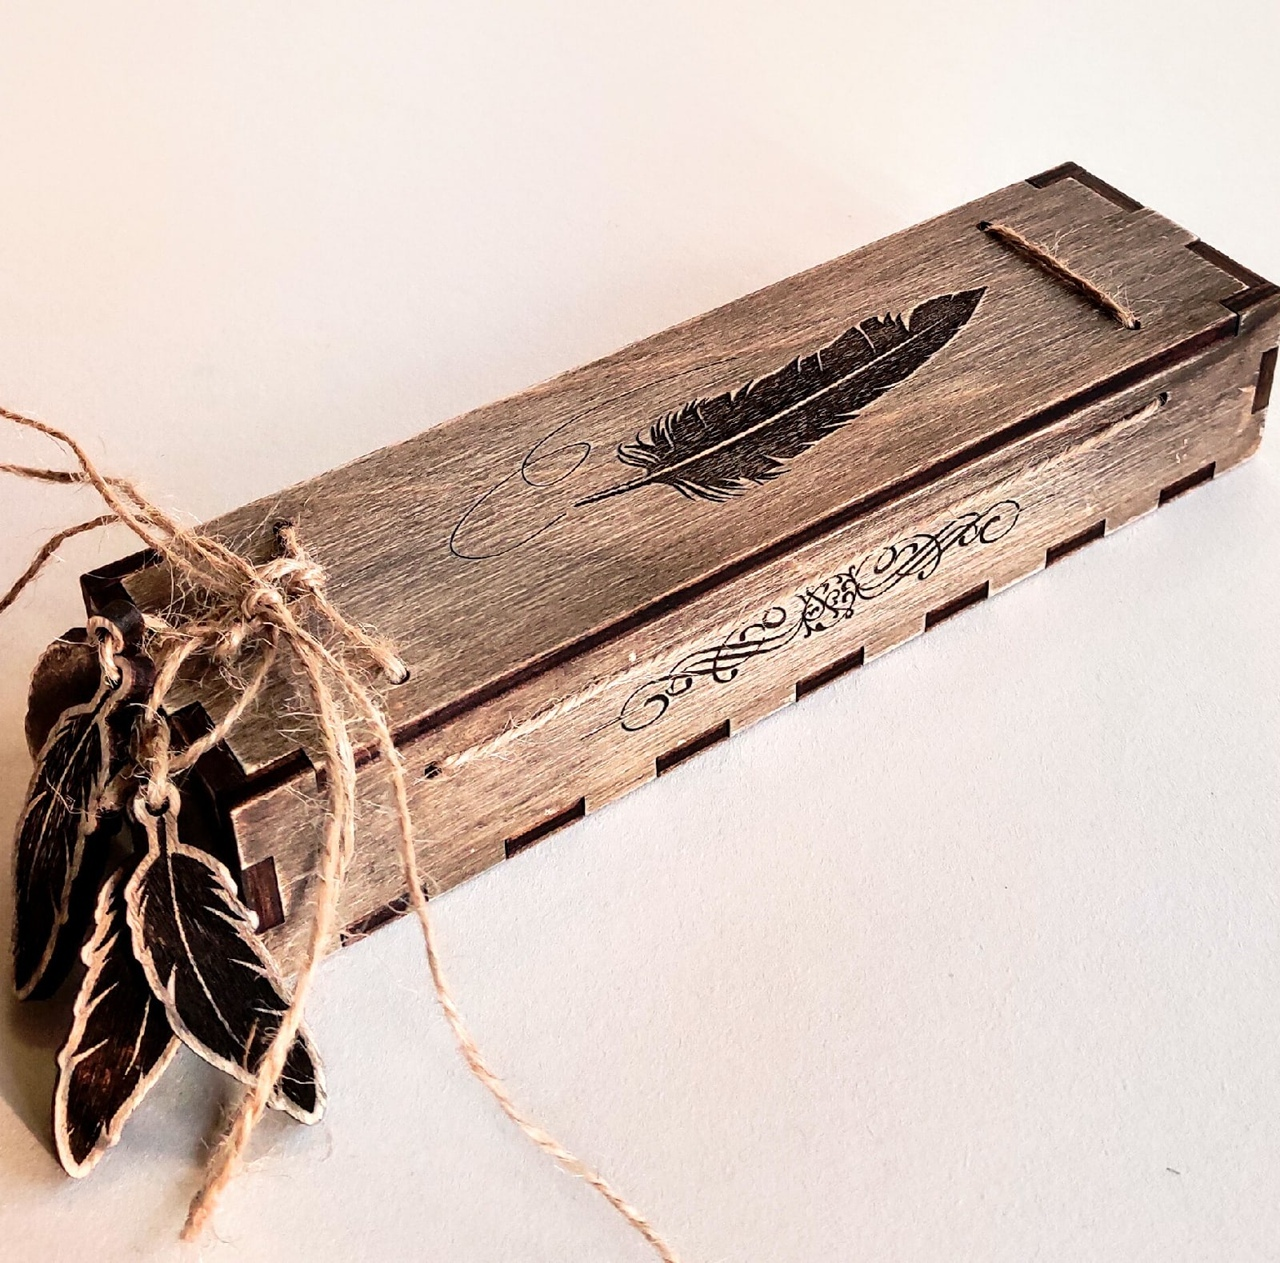 Laser Cut Decorative Wooden Pen Gift Box With Engraving Free CDR Vectors Art